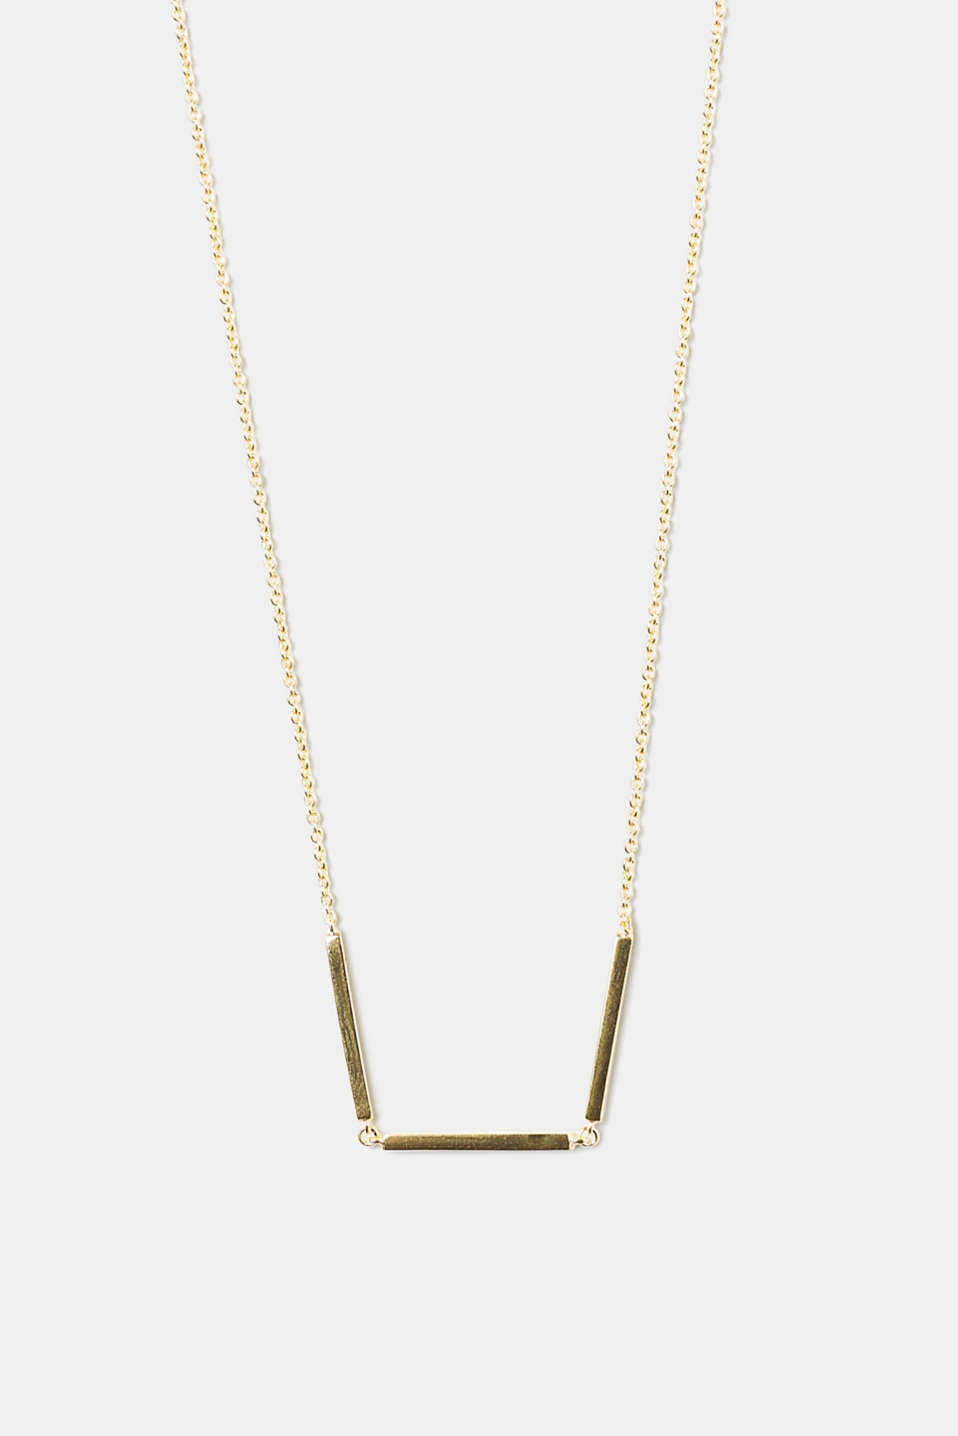 We love minimalist designs! This necklace stands out thanks to the narrow, multi-link pendant.